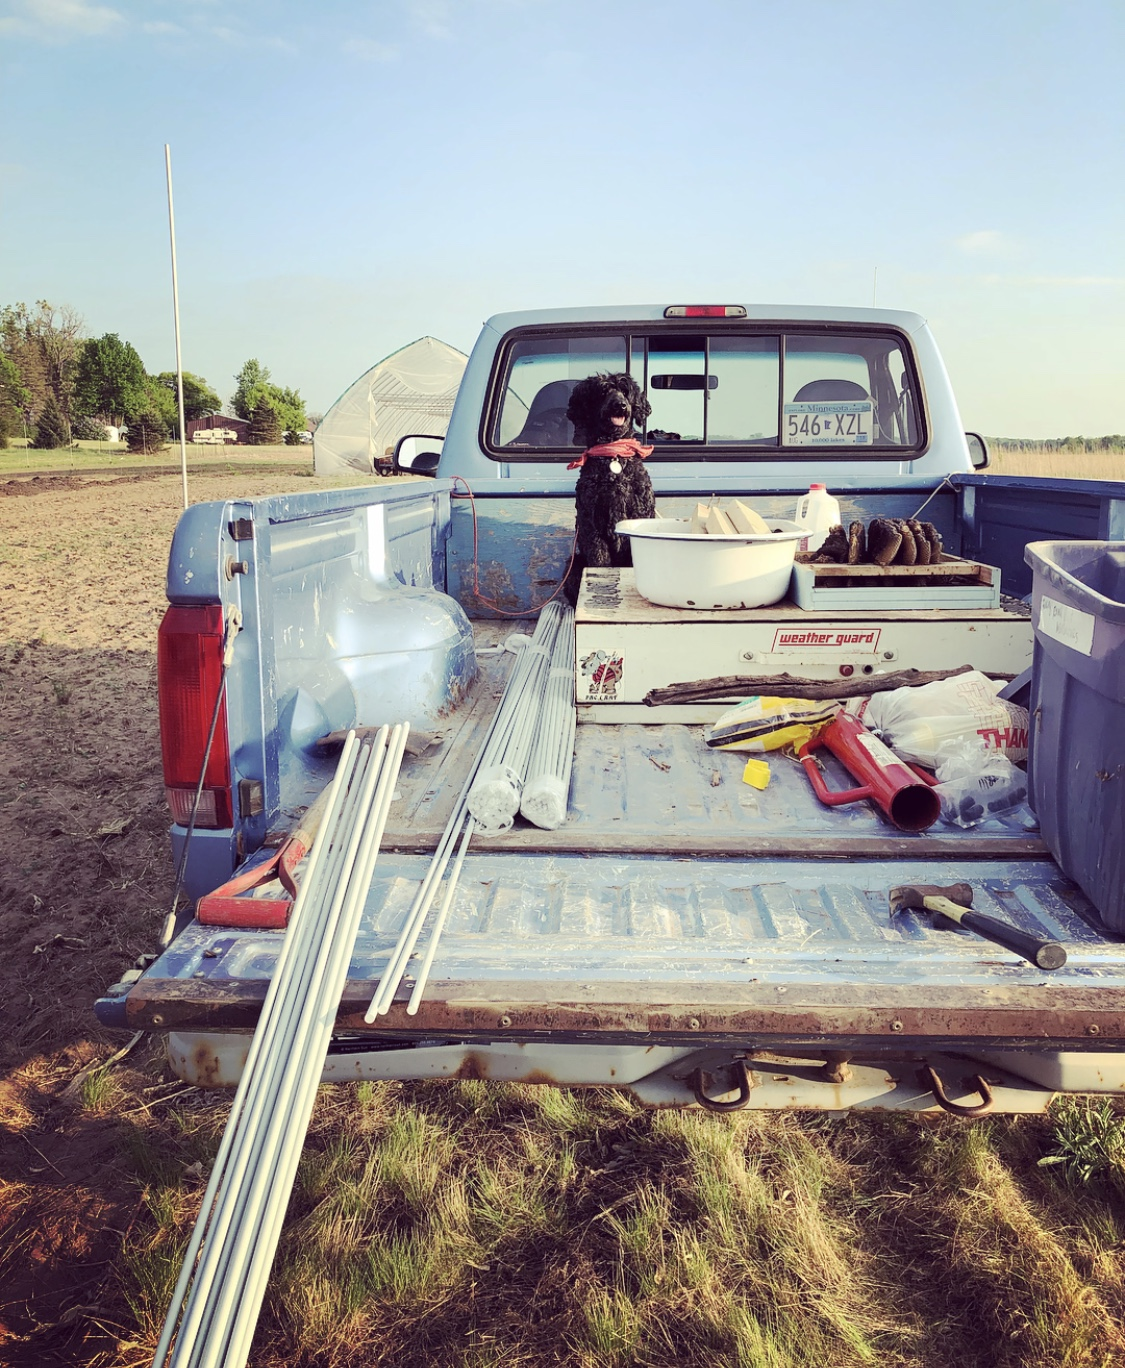 Sampson watching over the custom fiberglass fence posts in the back of the truck.